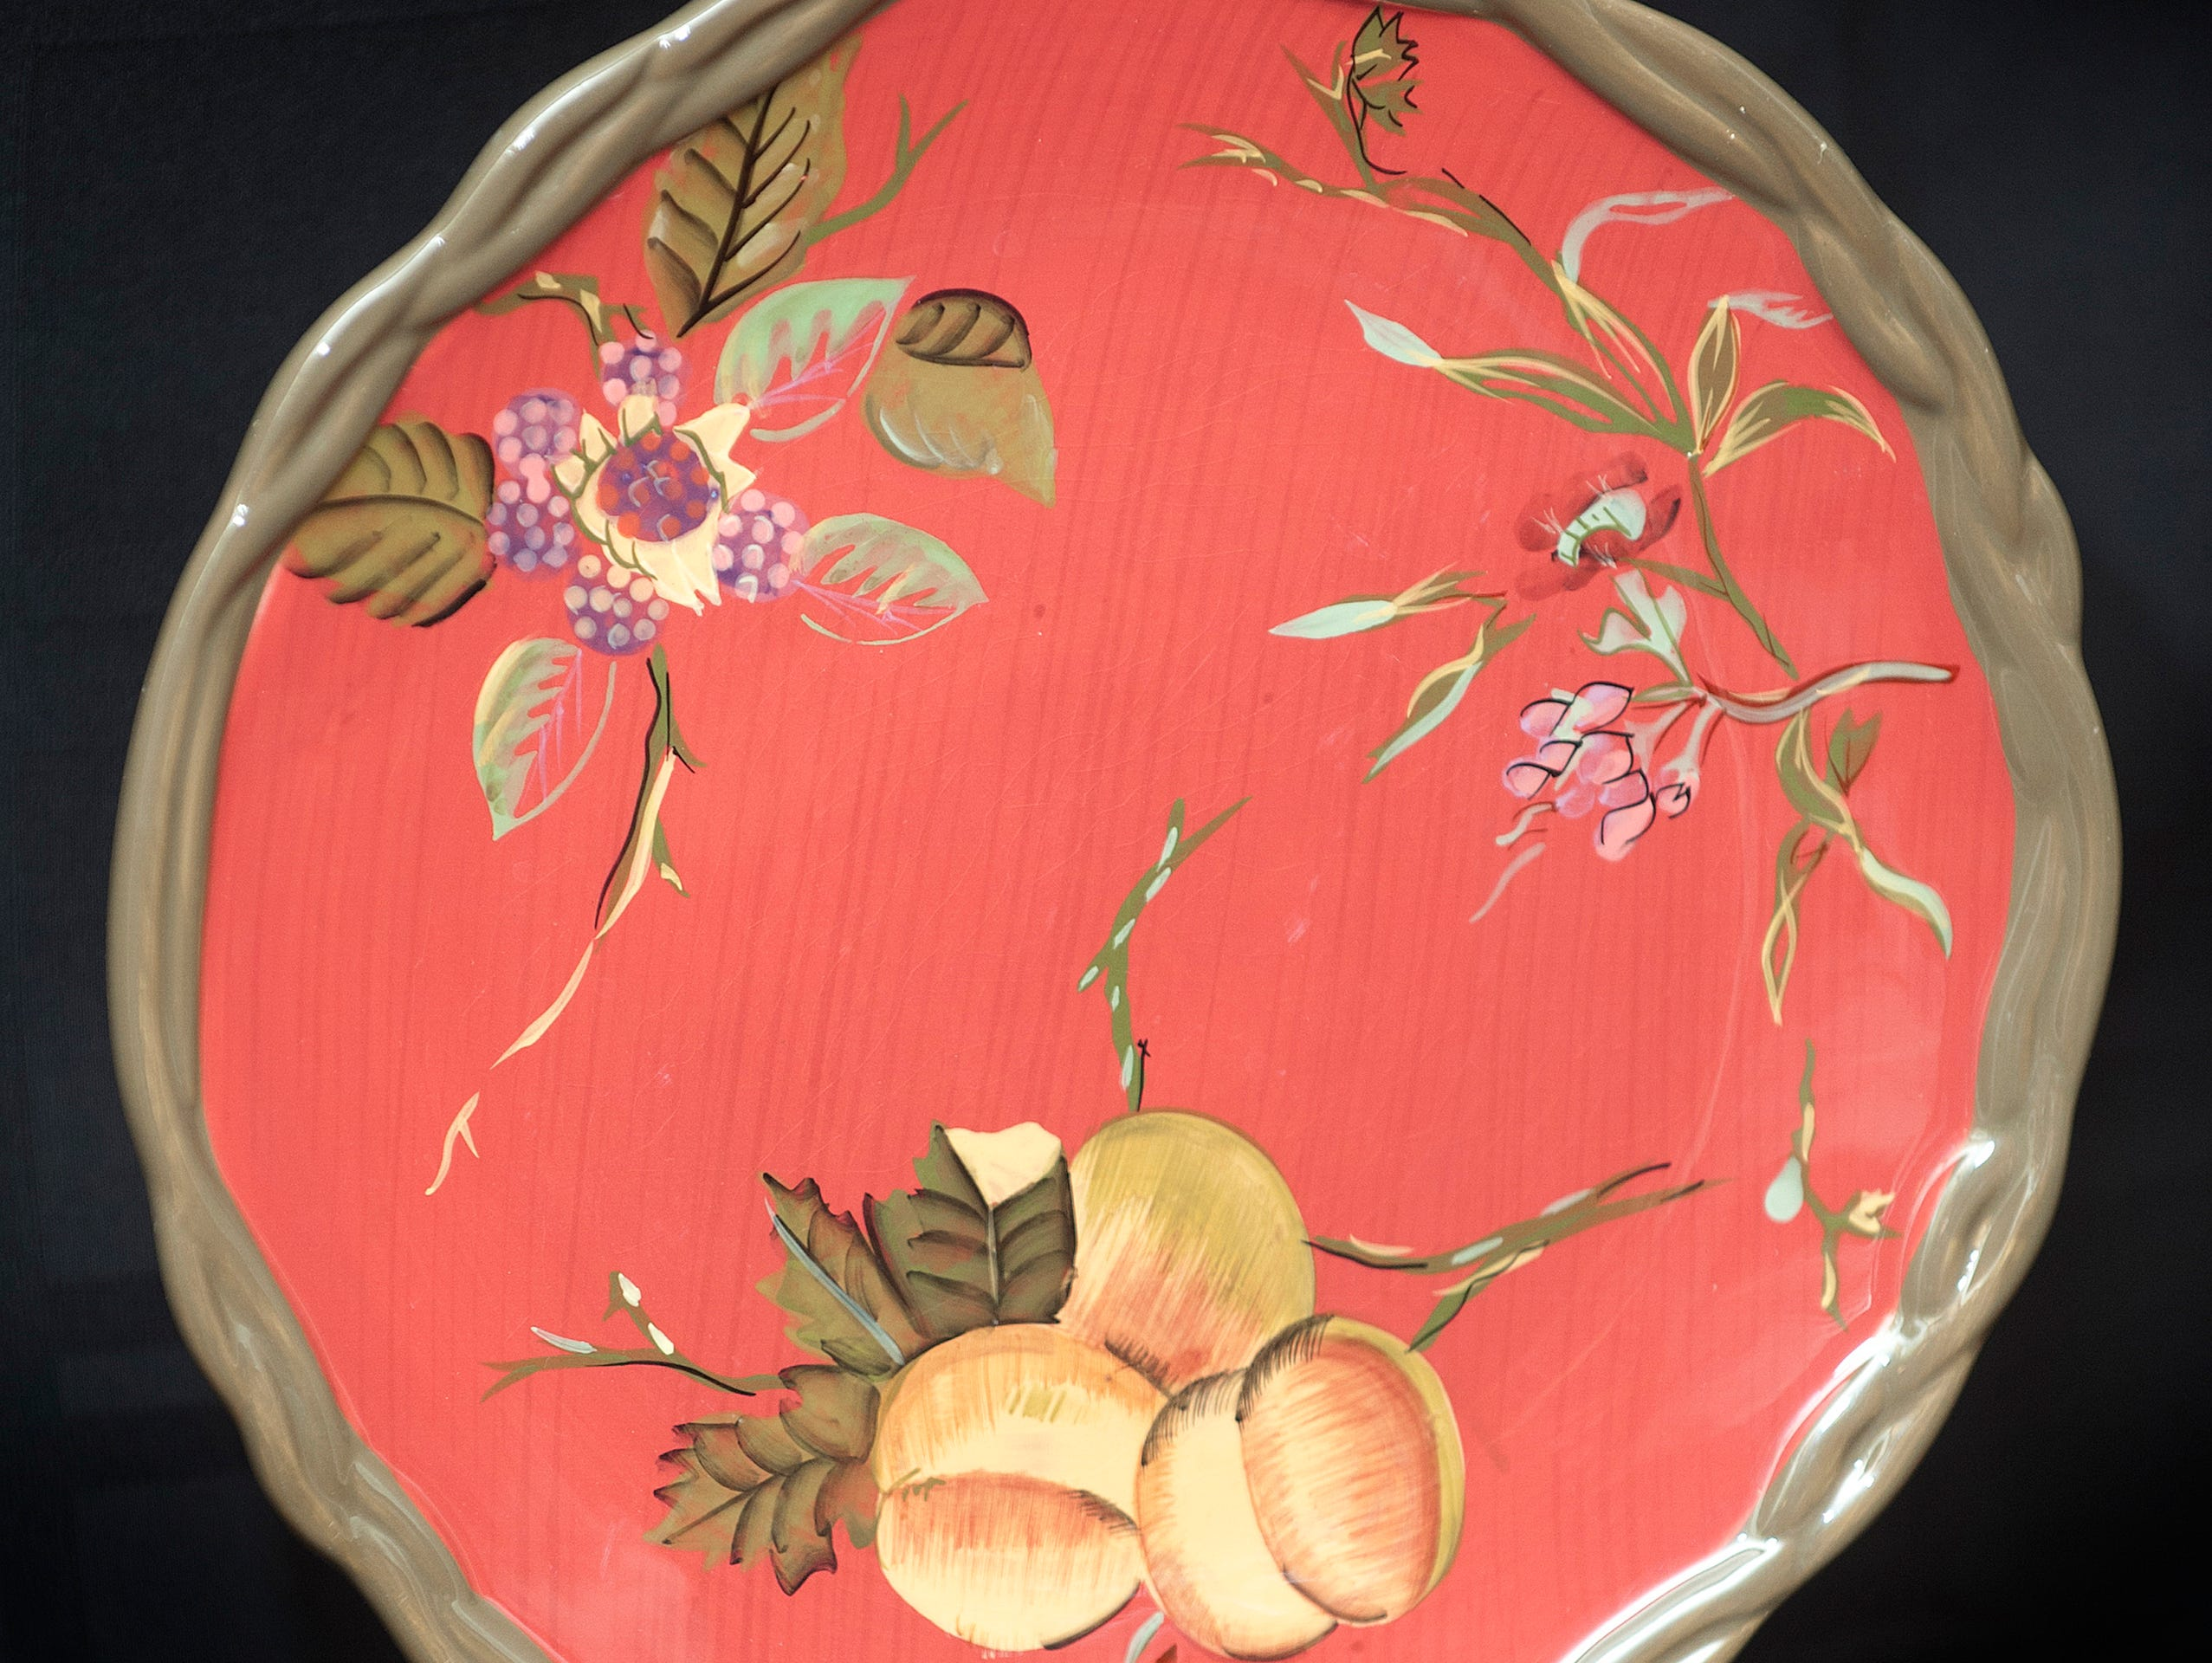 Carol Deeb took this dish to the paint store to use as a guide. The store recreated the various colors that she then used on the home's interior walls.